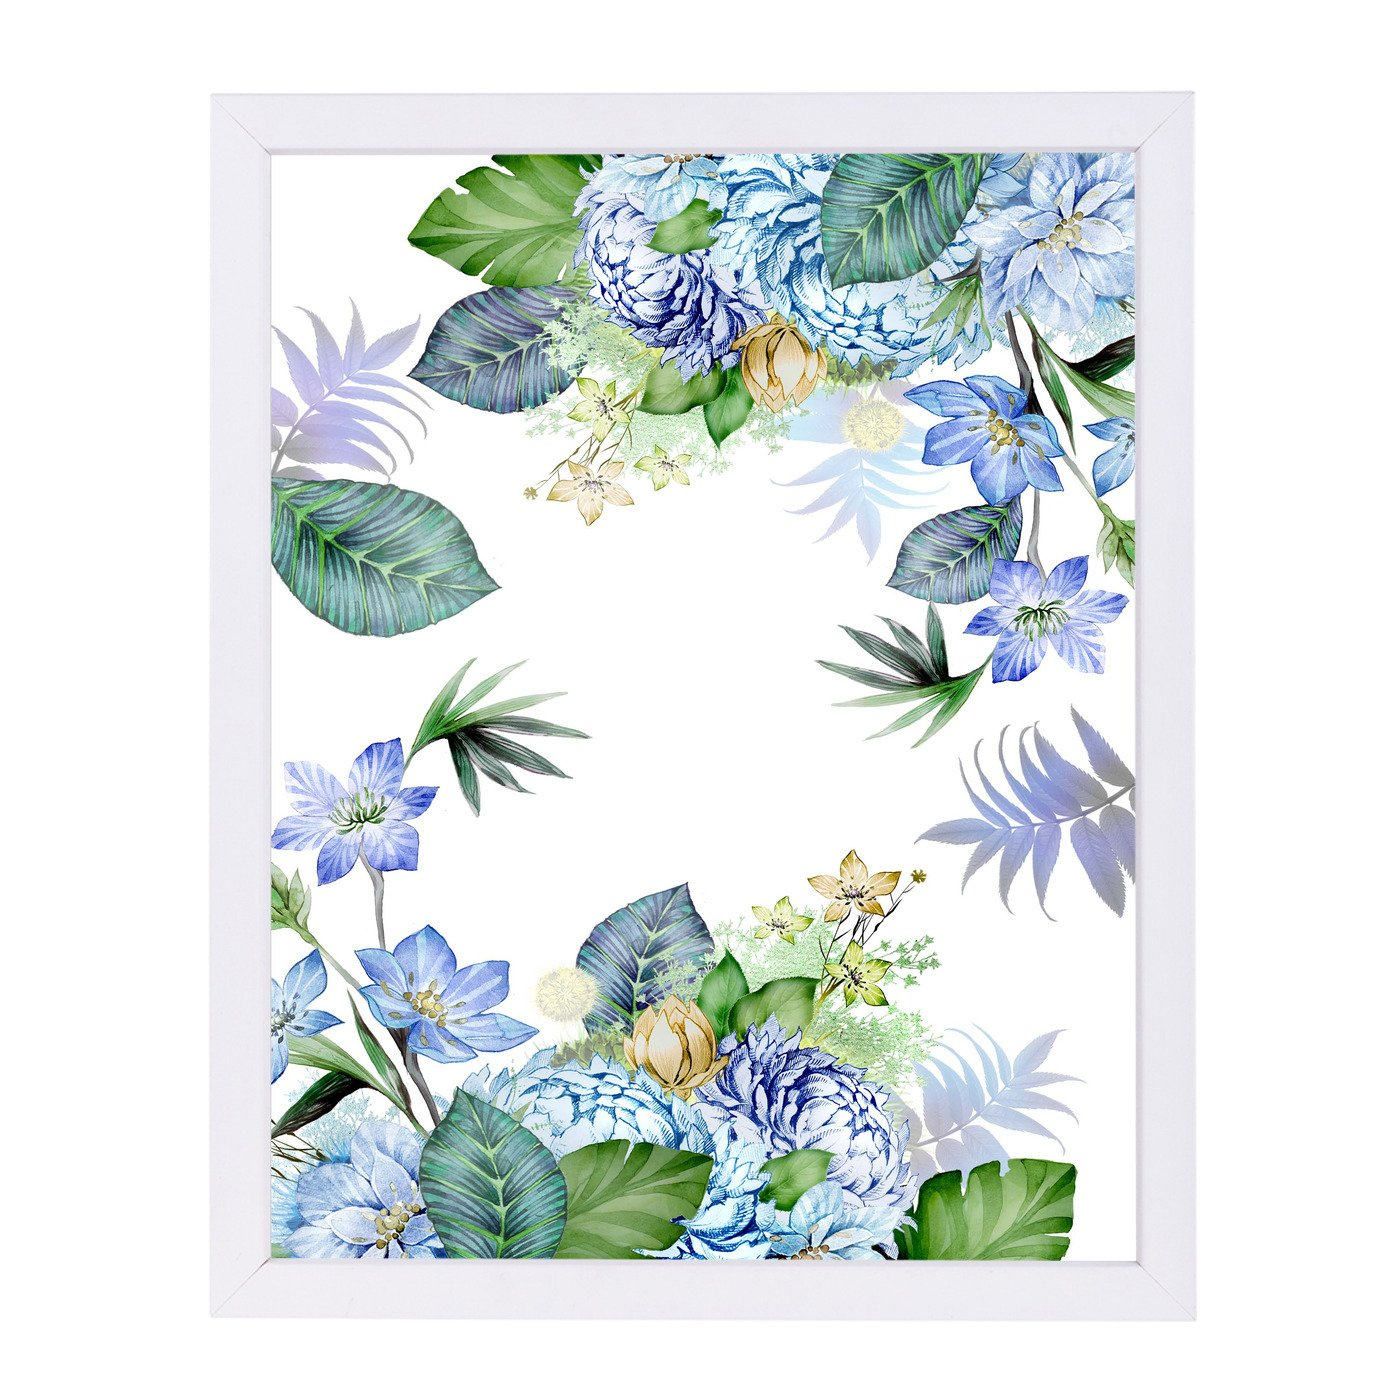 Yell Blue Border By Victoria Nelson - Framed Print - Americanflat